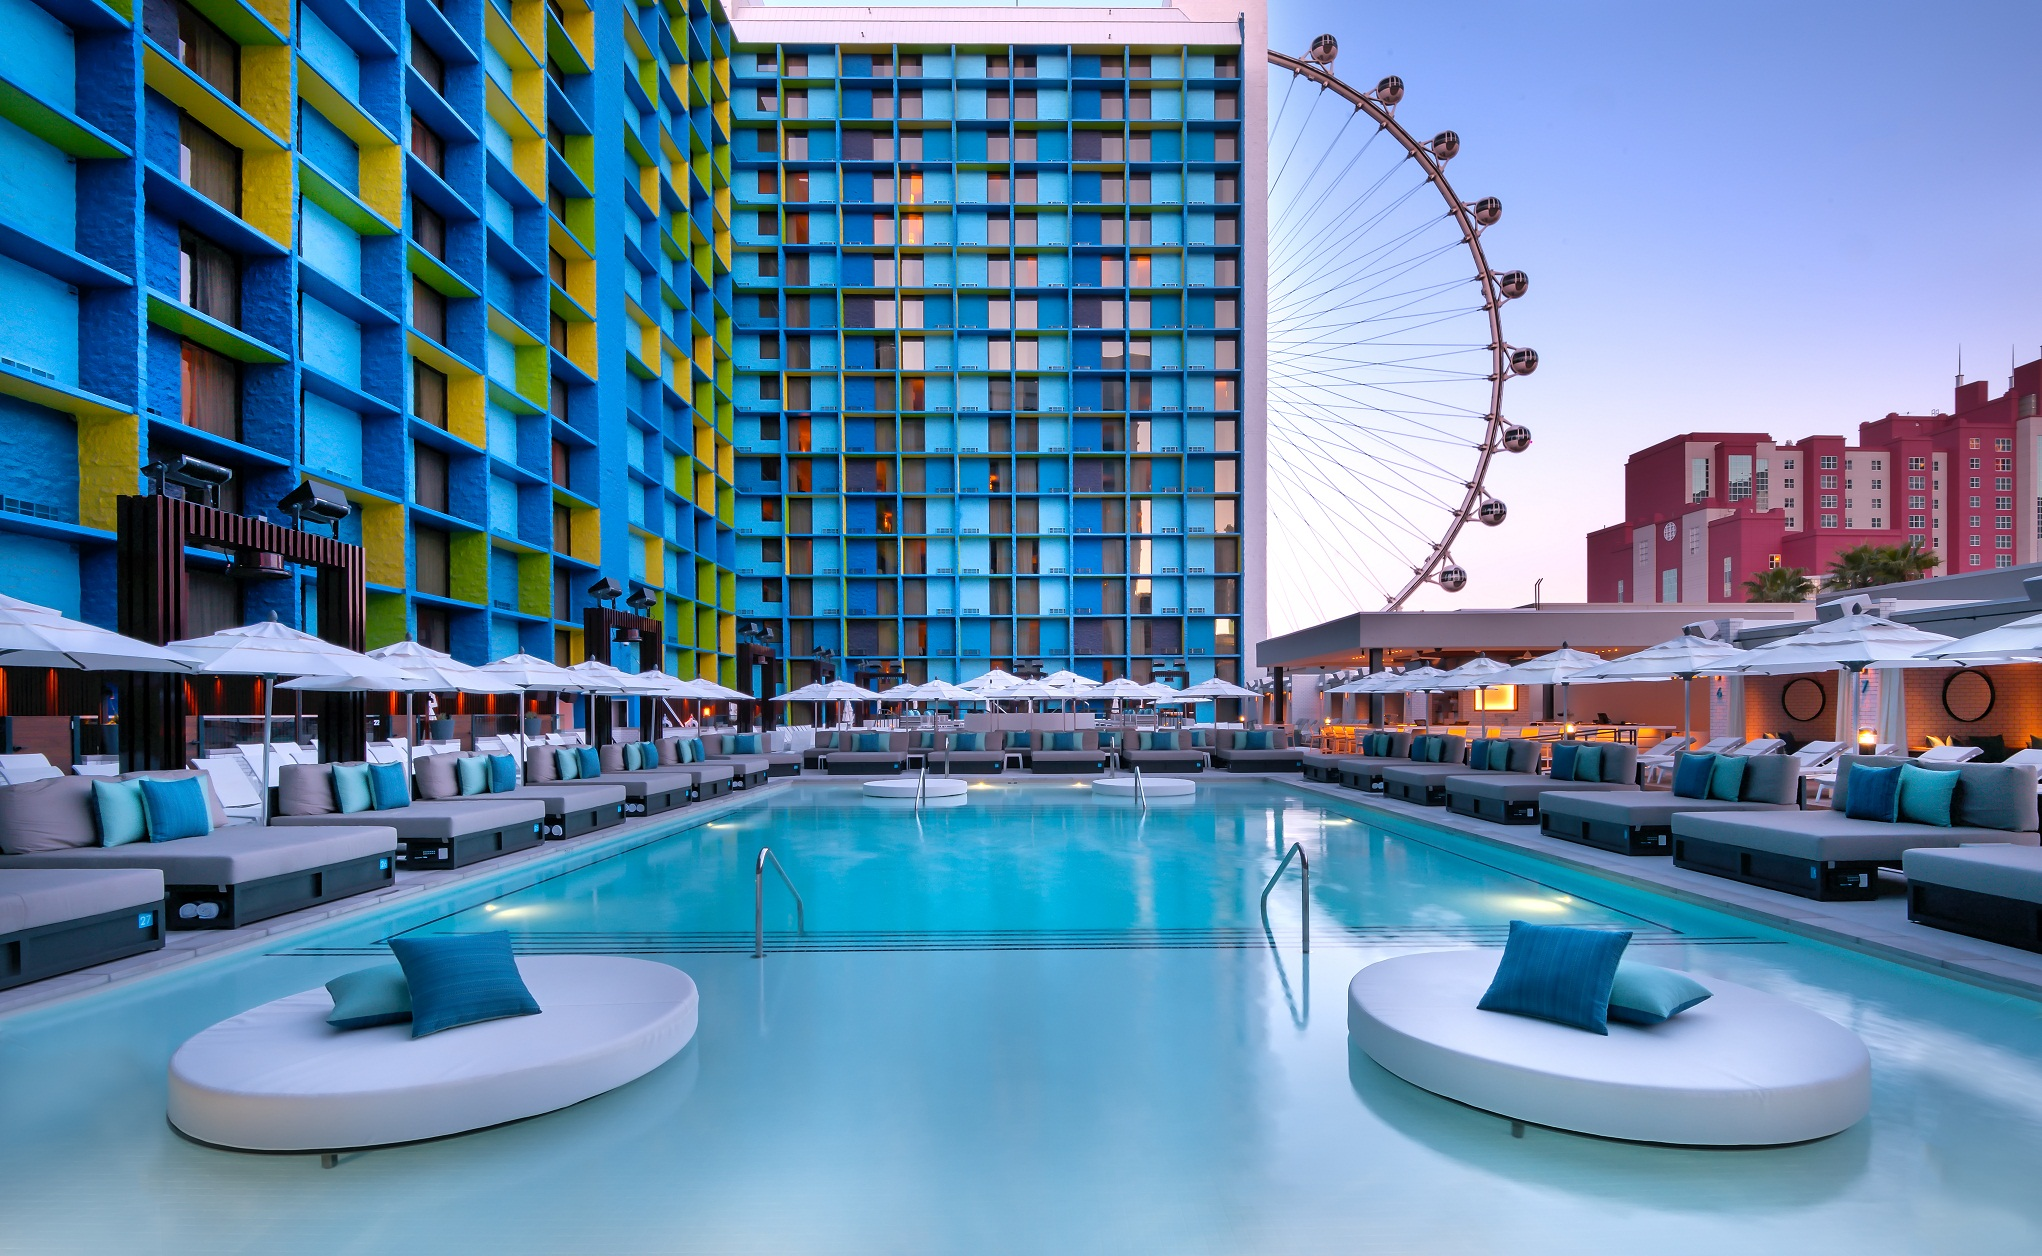 The LINQ Pool. Like this but covered in ping pong balls. Photo courtesy of the LINQ Hotel and Casino.